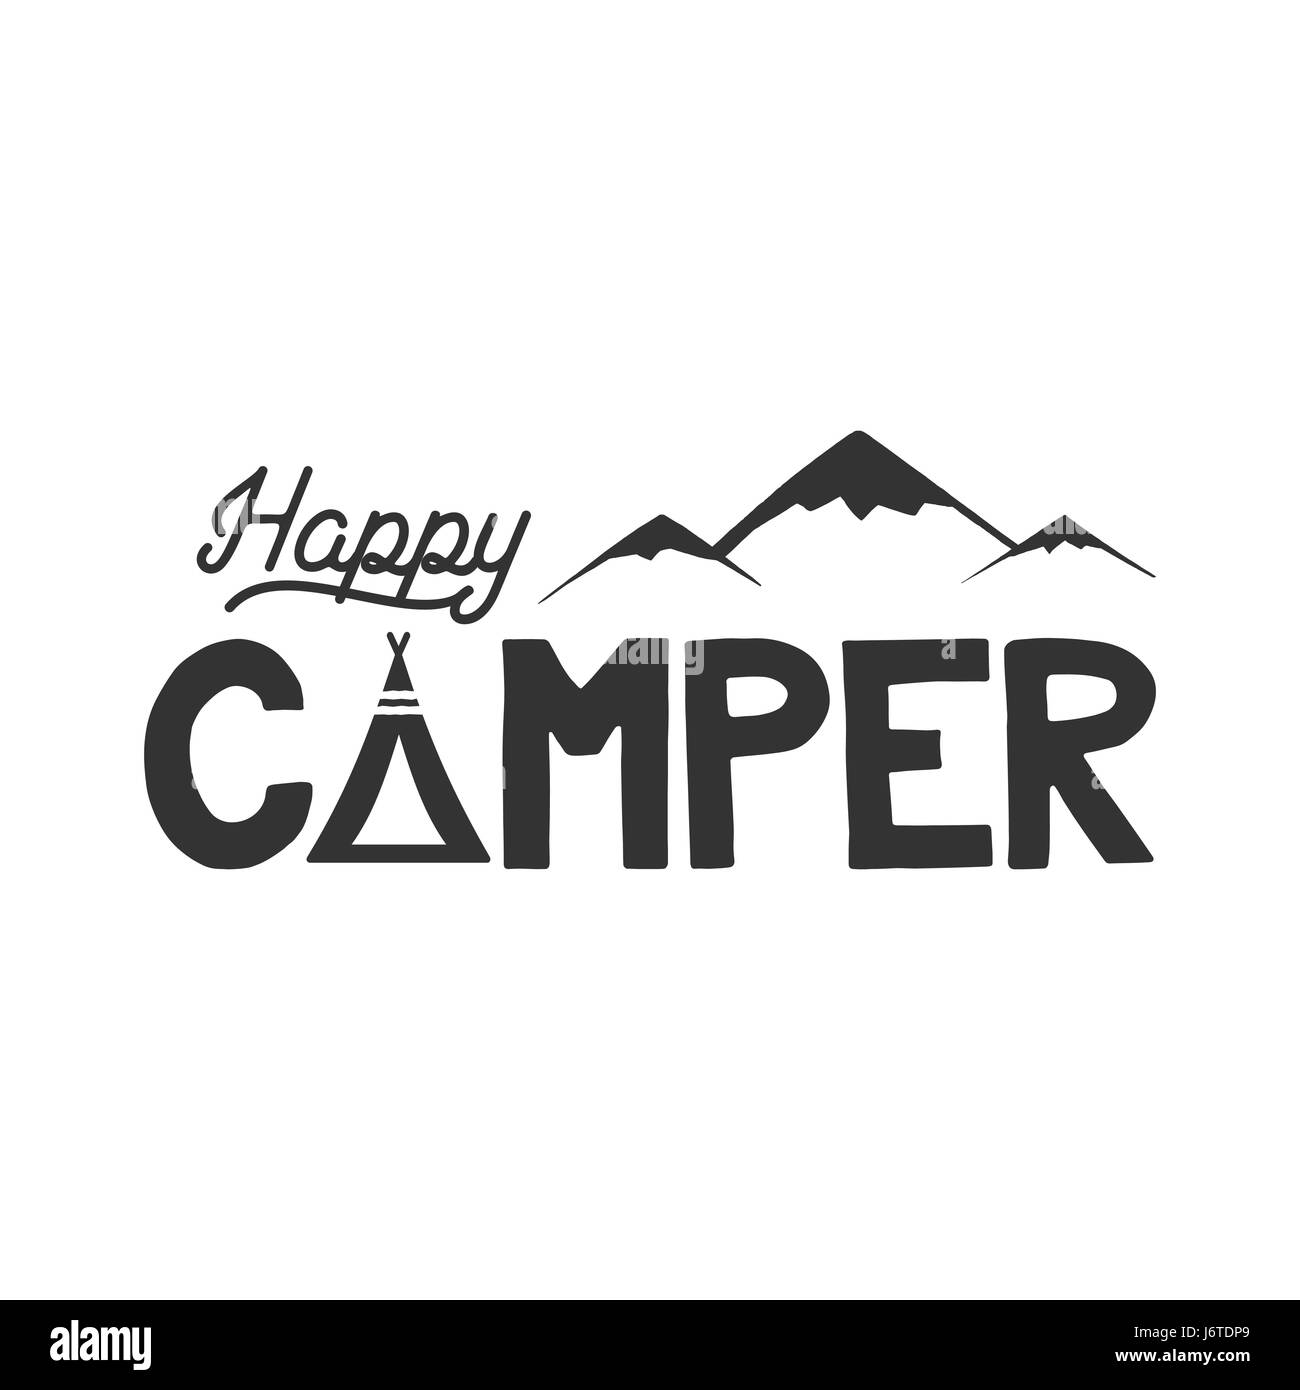 happy camper poster template  tent  mountains and text